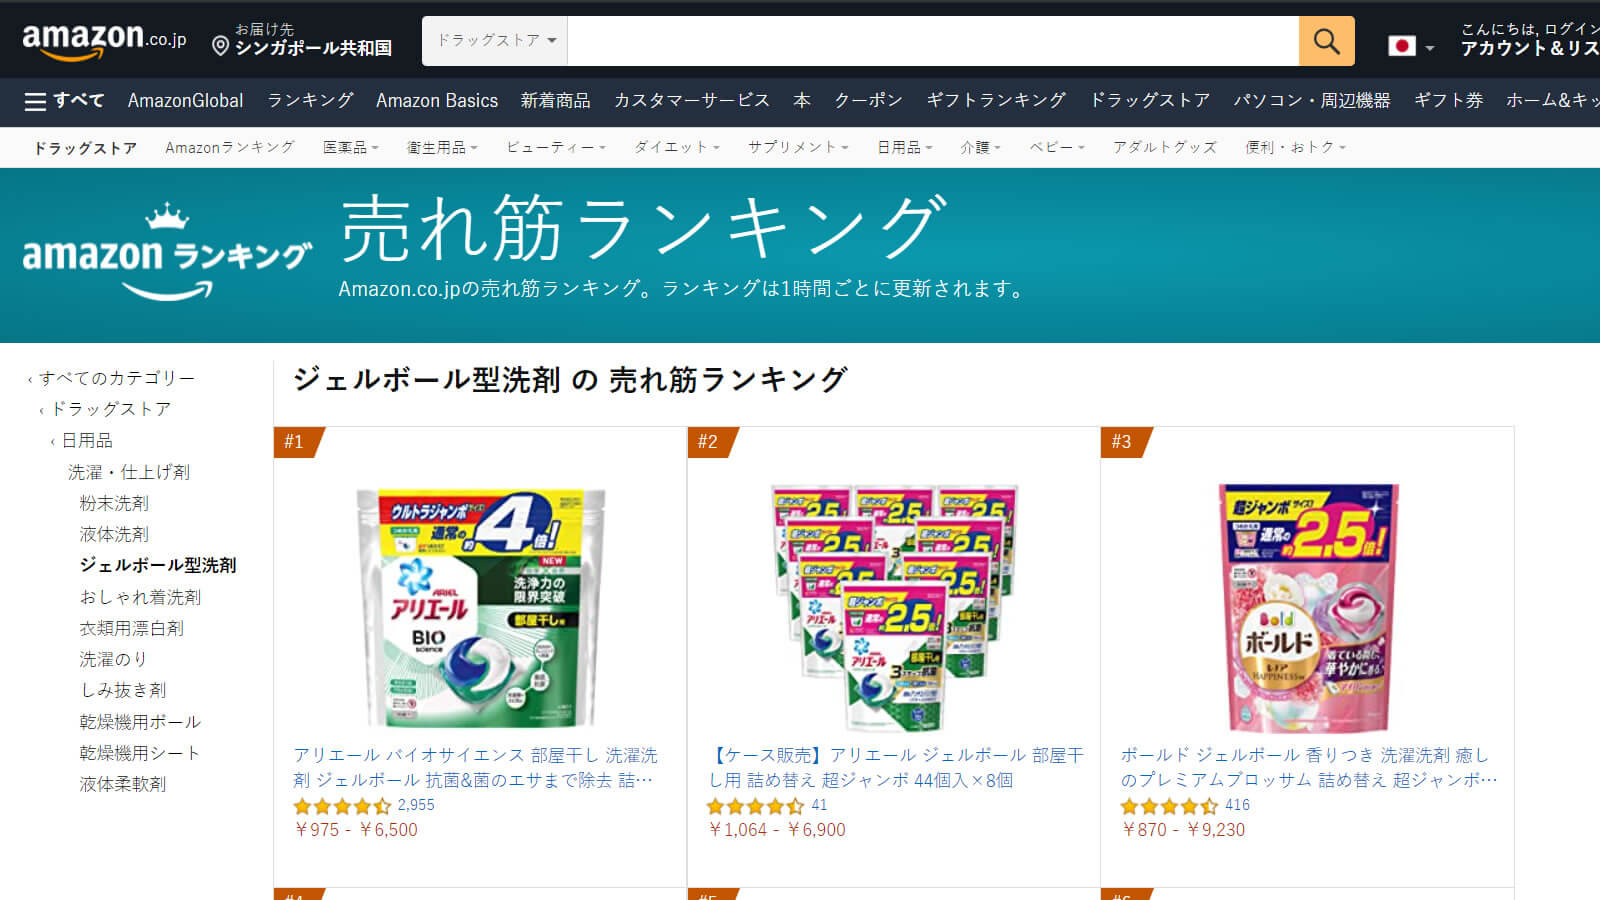 amazon jp, ka laundry detergent not in sight